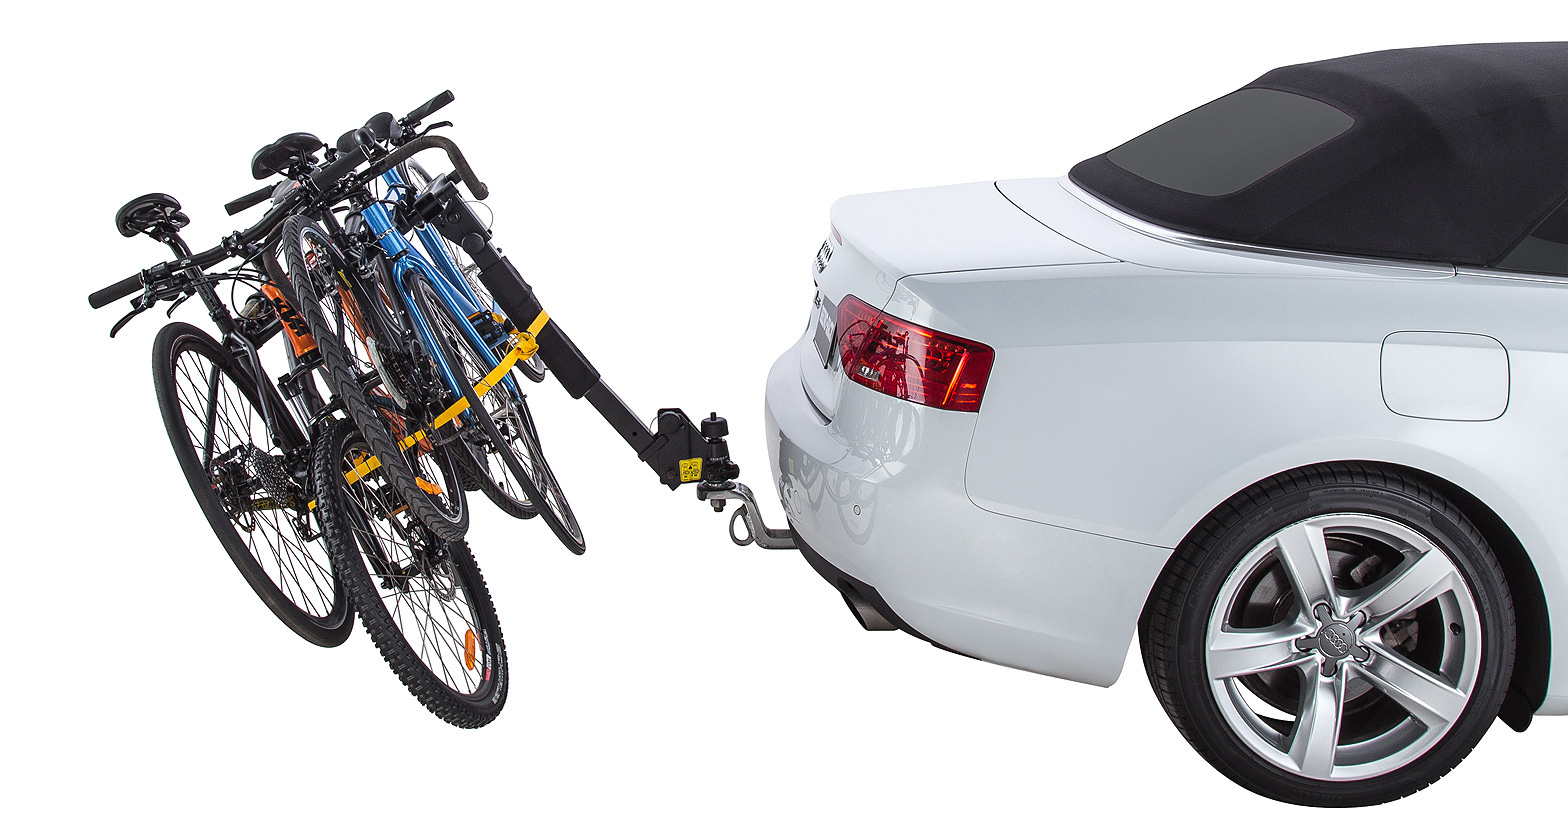 RBC008 - 4 Bike Carrier | Rhino-Rack  sc 1 st  Rhino-Rack & 4 Bike Carrier (Towball Mount) - #RBC008 | Rhino-Rack